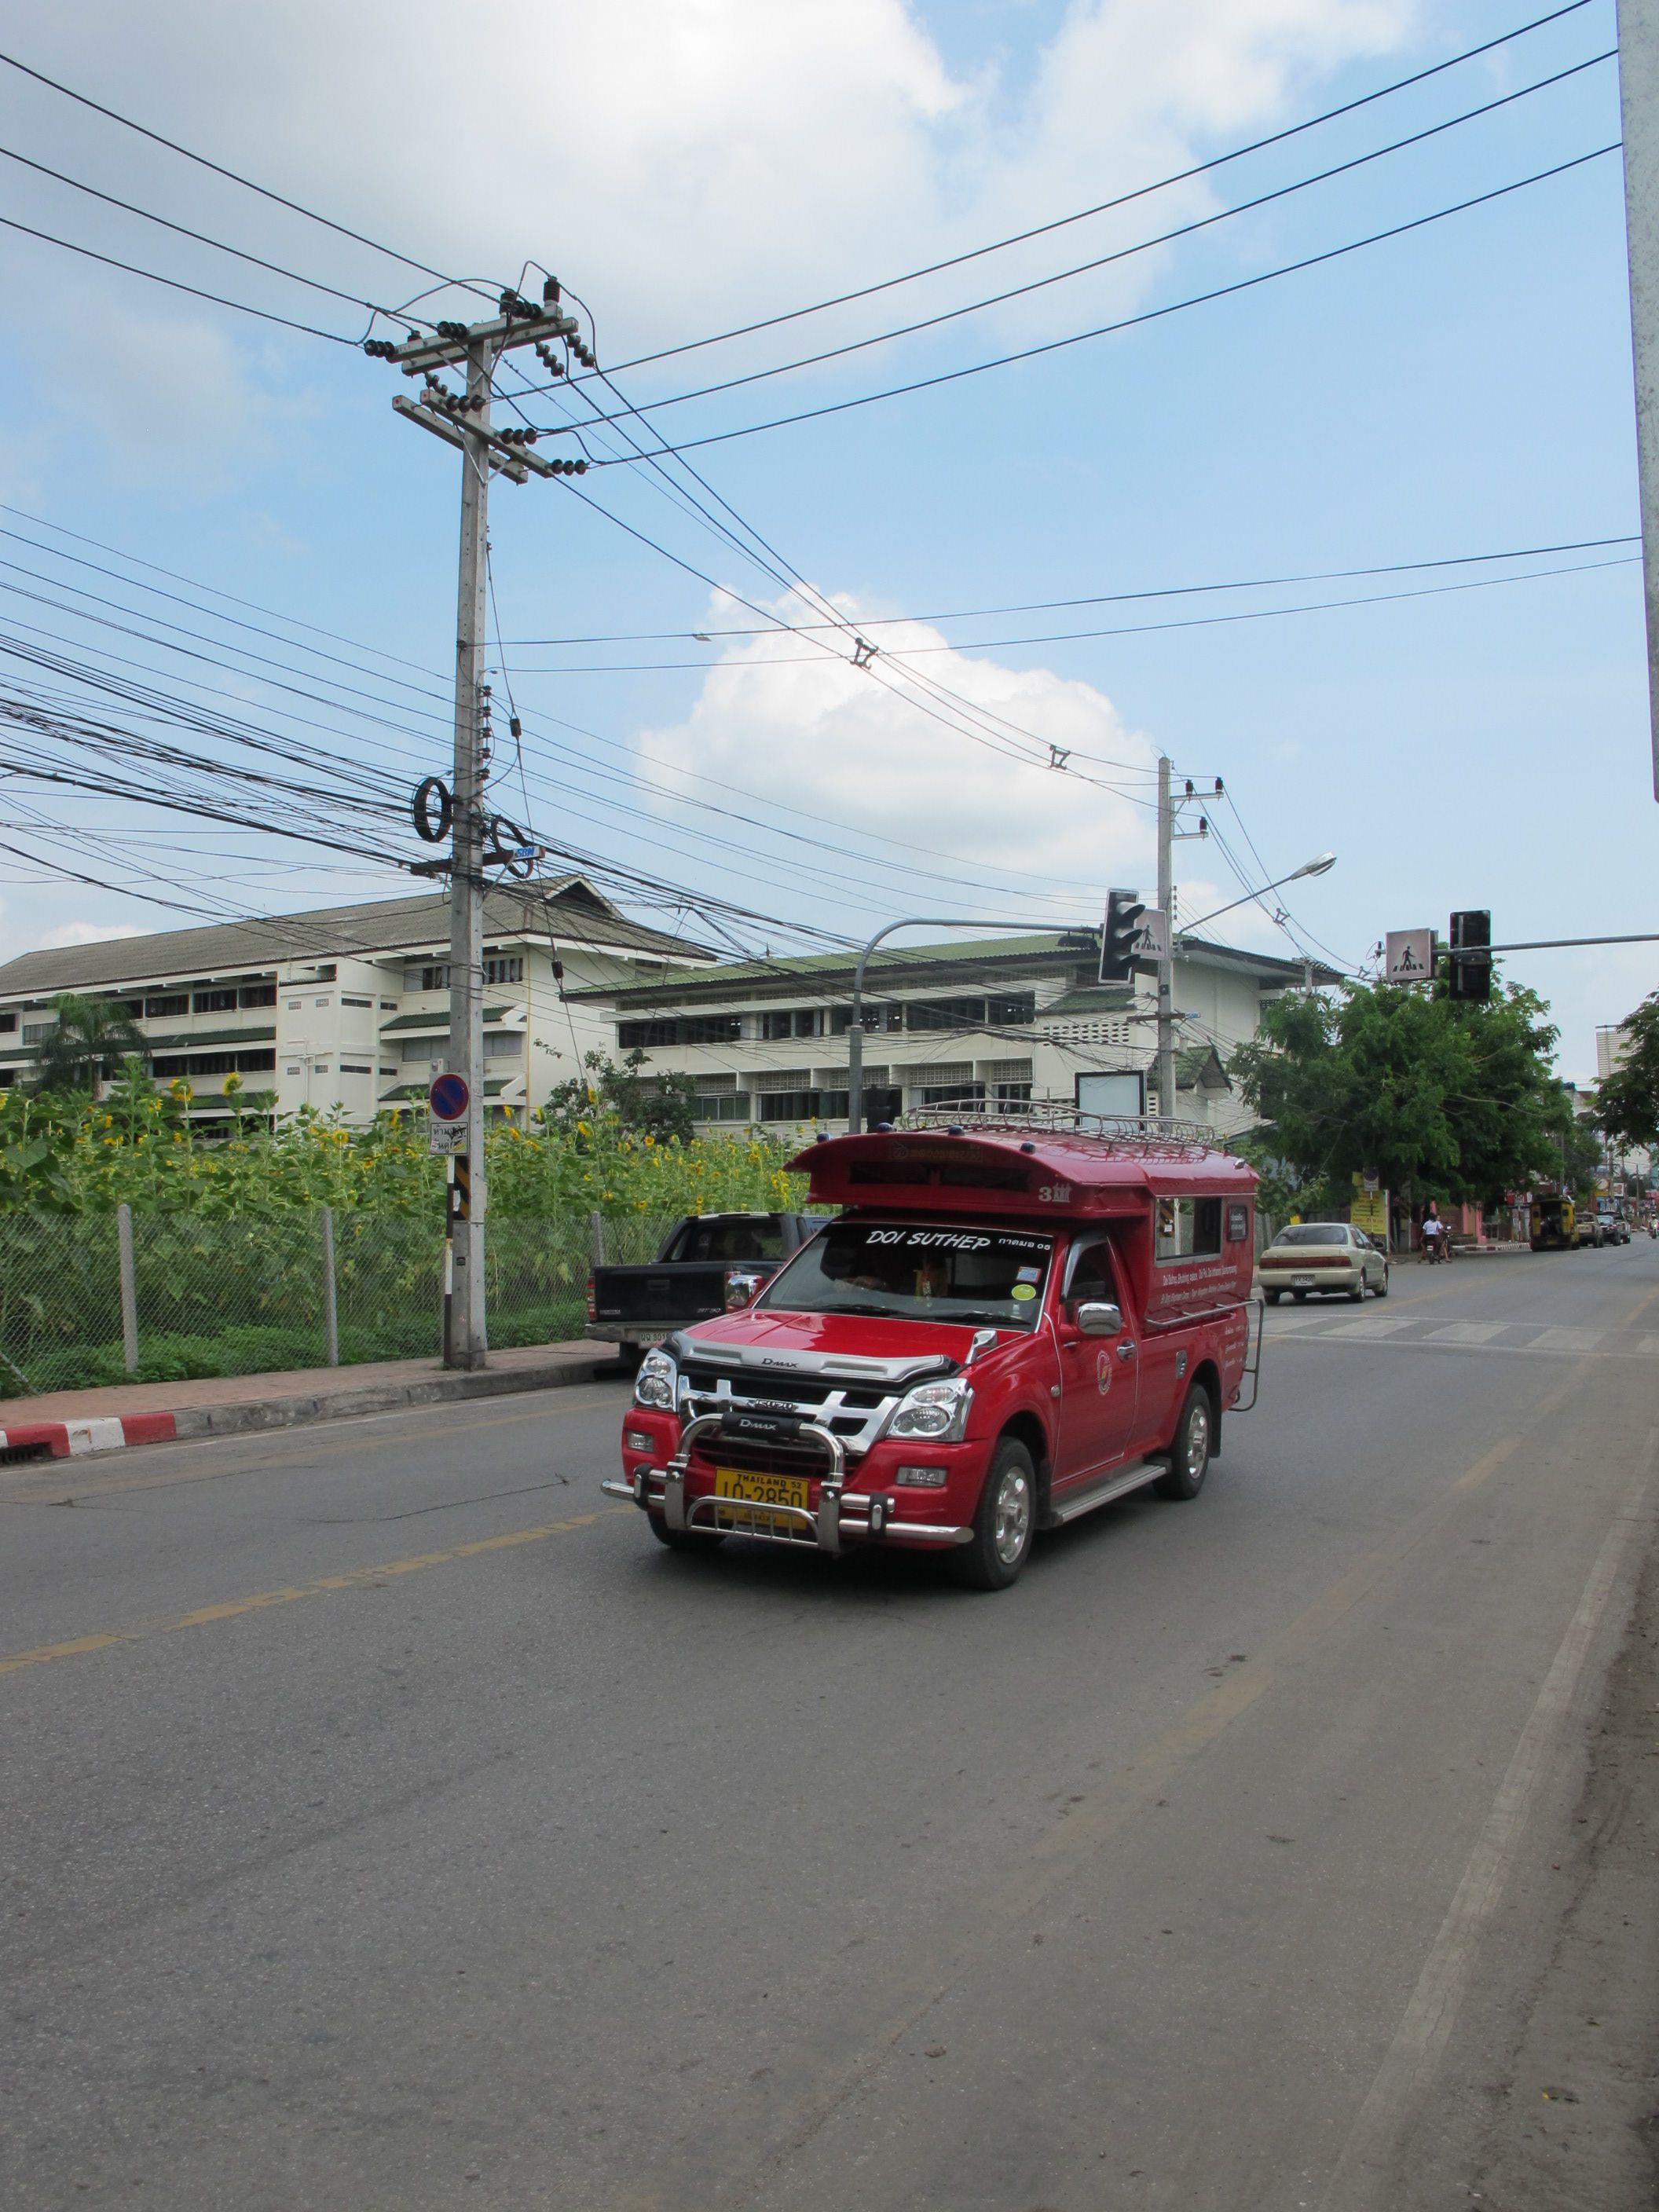 You May Try Song Thaew 2 Seated Rolls For Passengers Or Shared Taxi To Get Around Chiang Mai In A Very Local Way